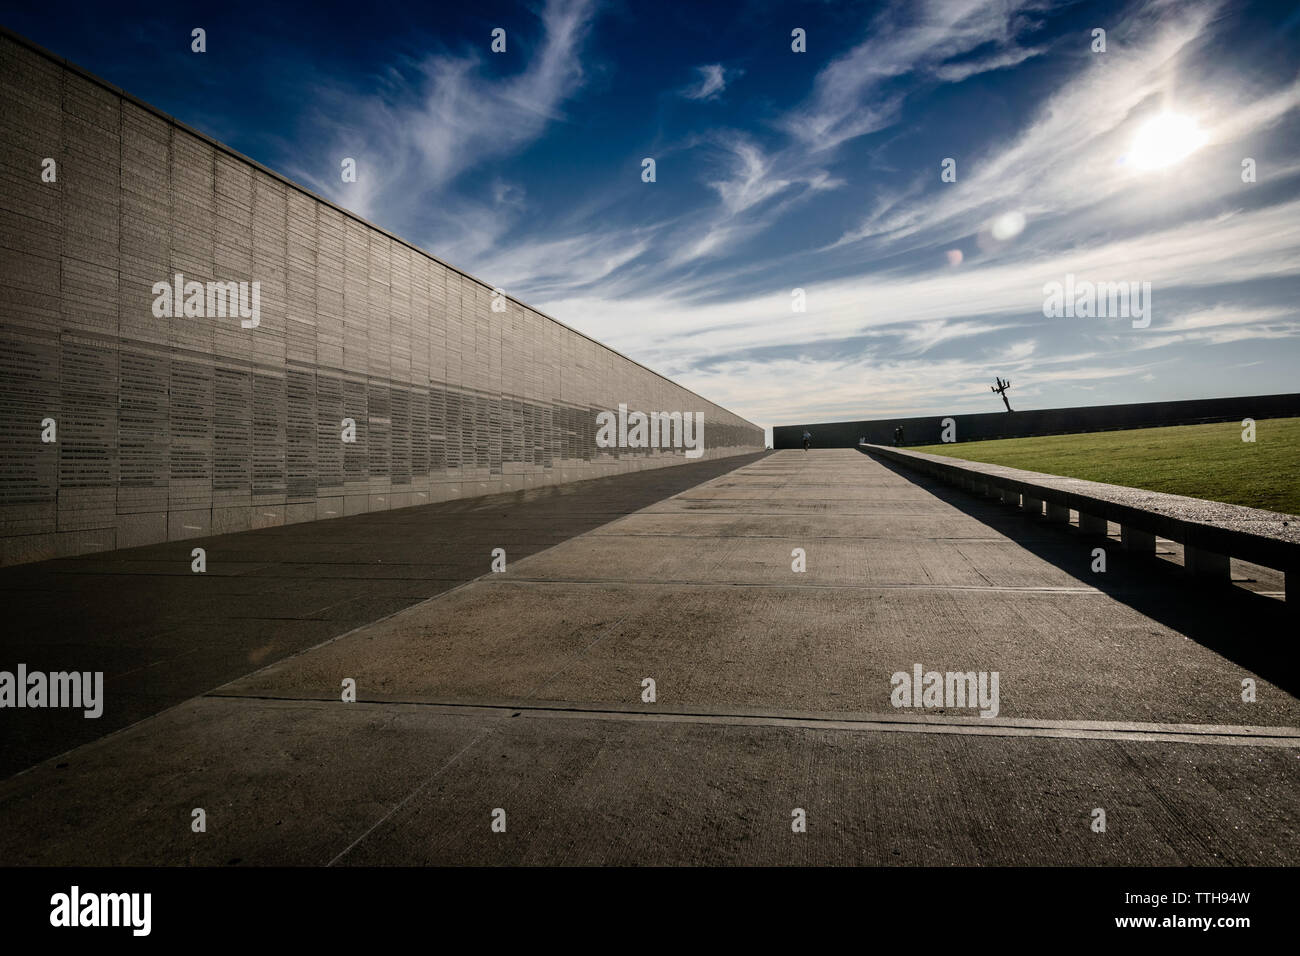 Wall that remembers the names of the victims of state violence, in the Memory Park in Buenos Aires, Argentina Stock Photo